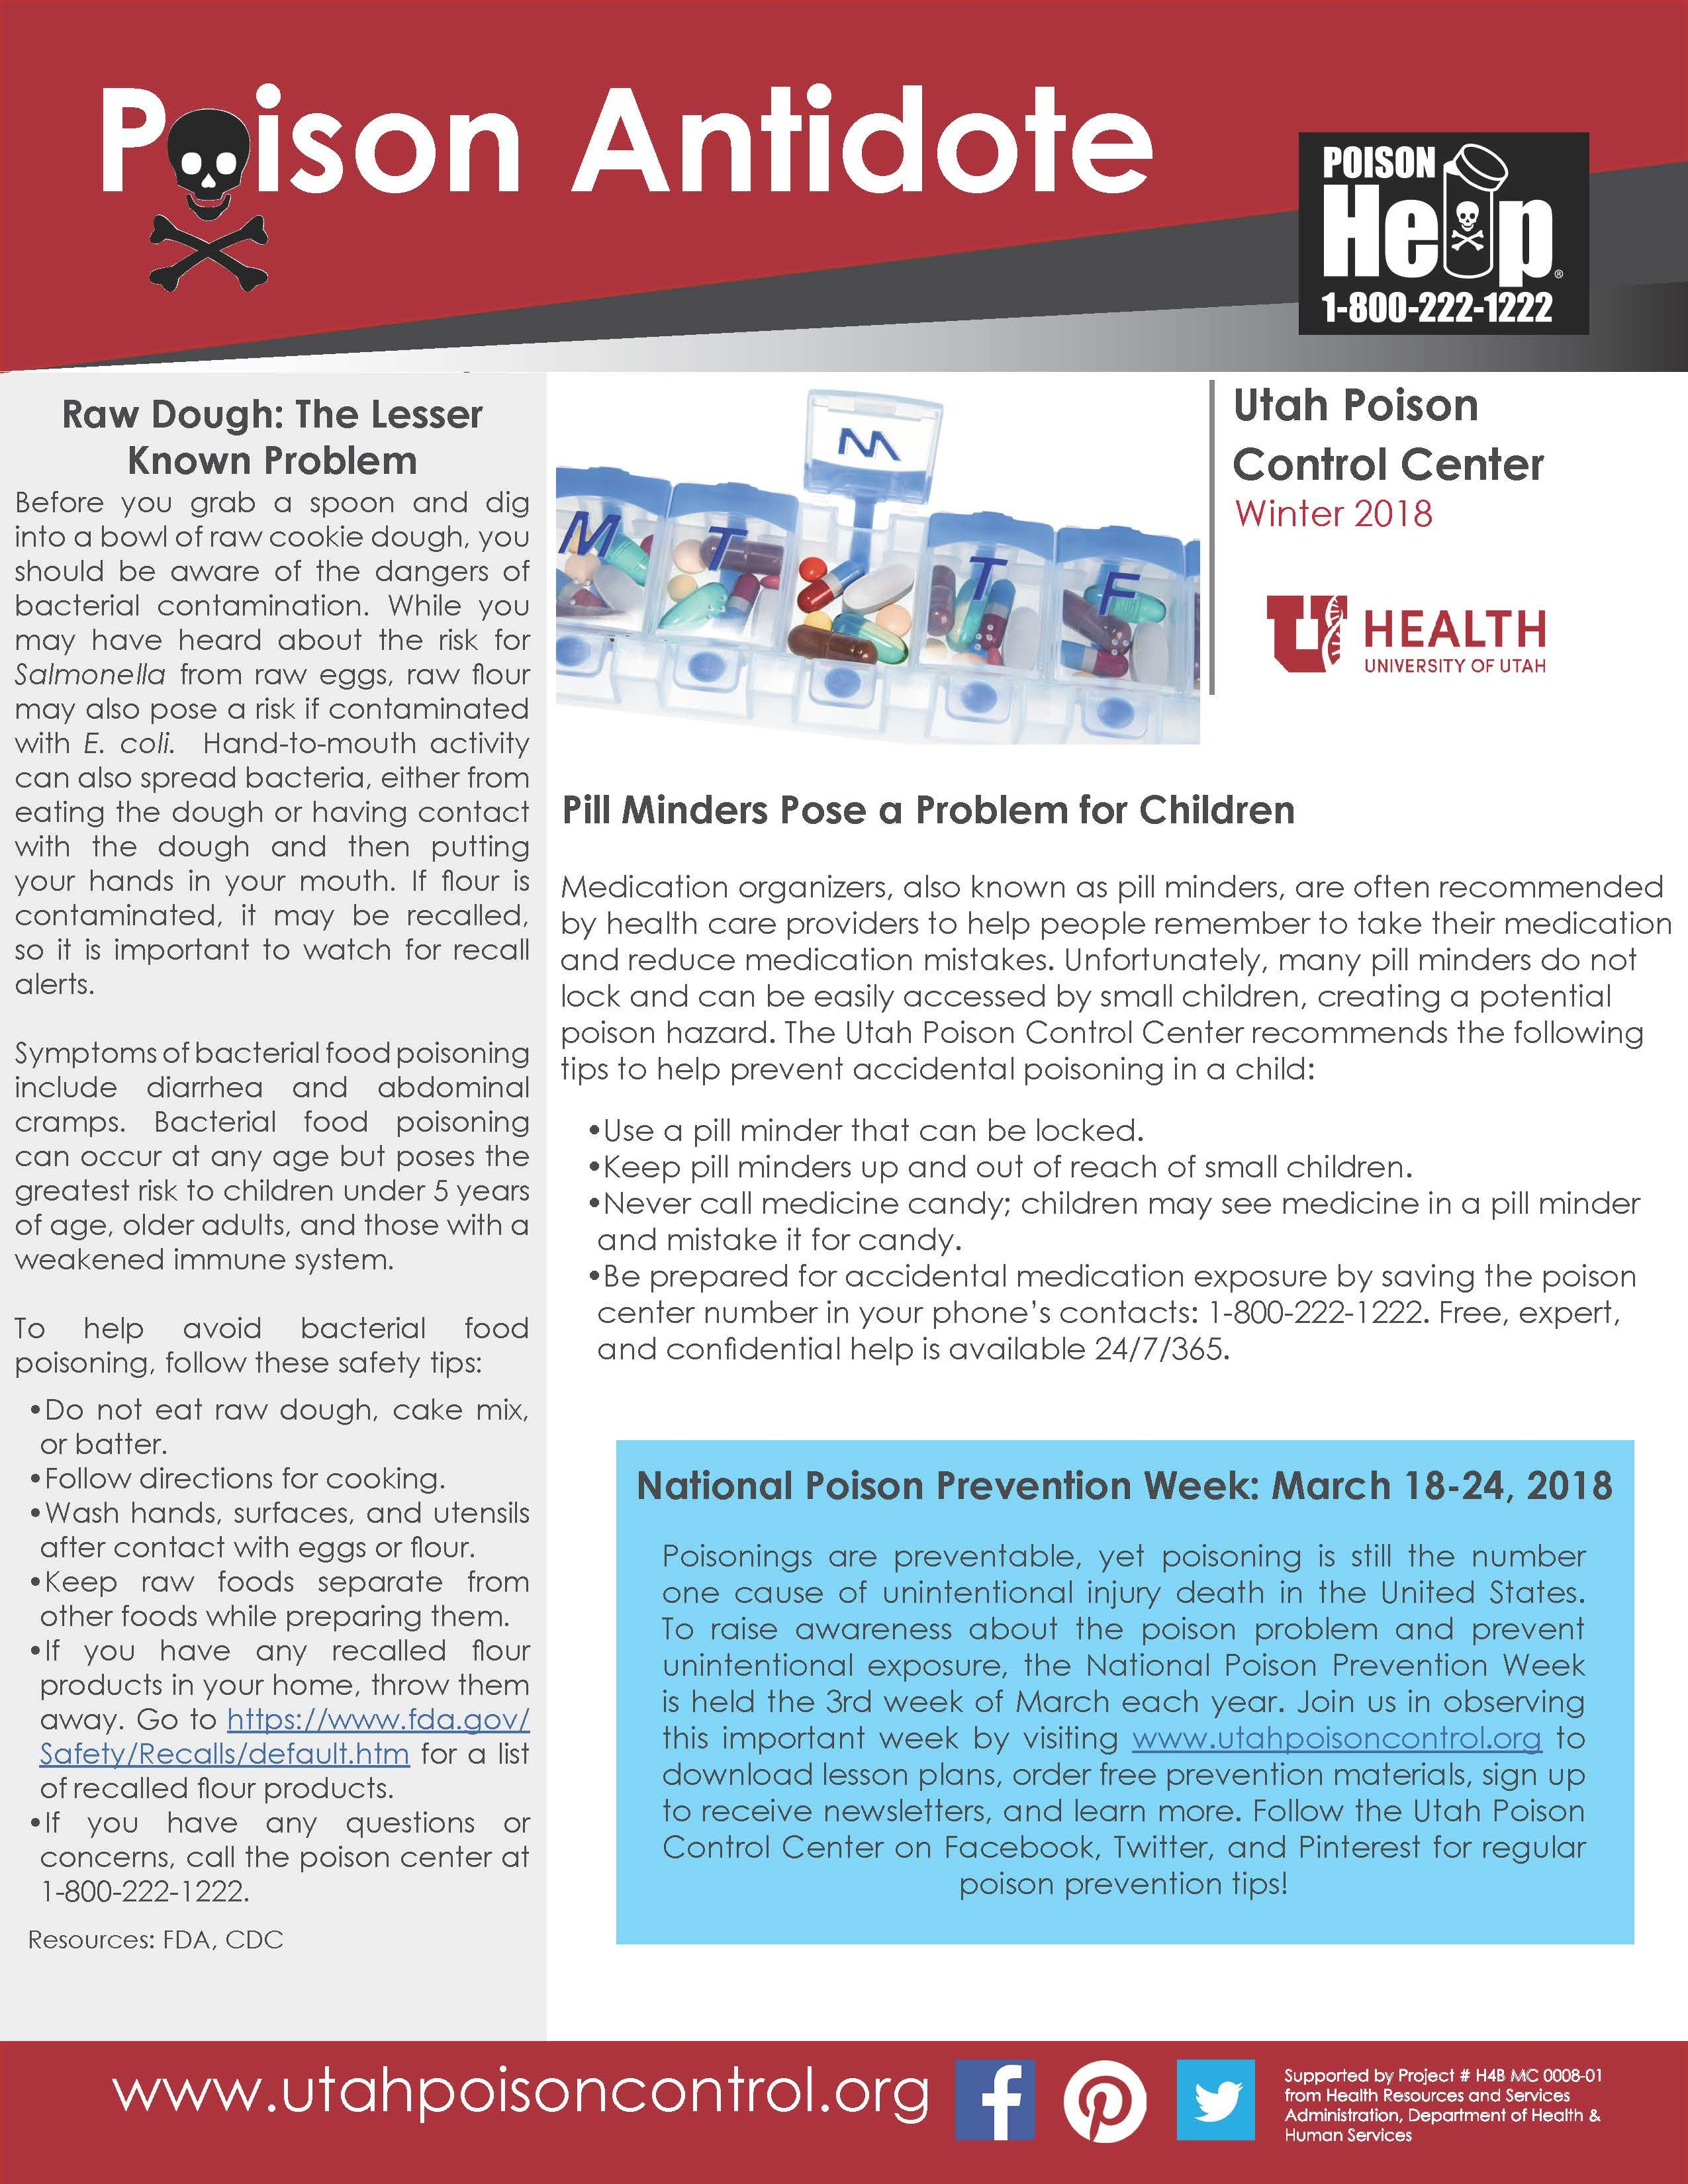 Poison Control Utah >> Utah Poison Control Center Winter 2018 Poison Antidote Newsletter